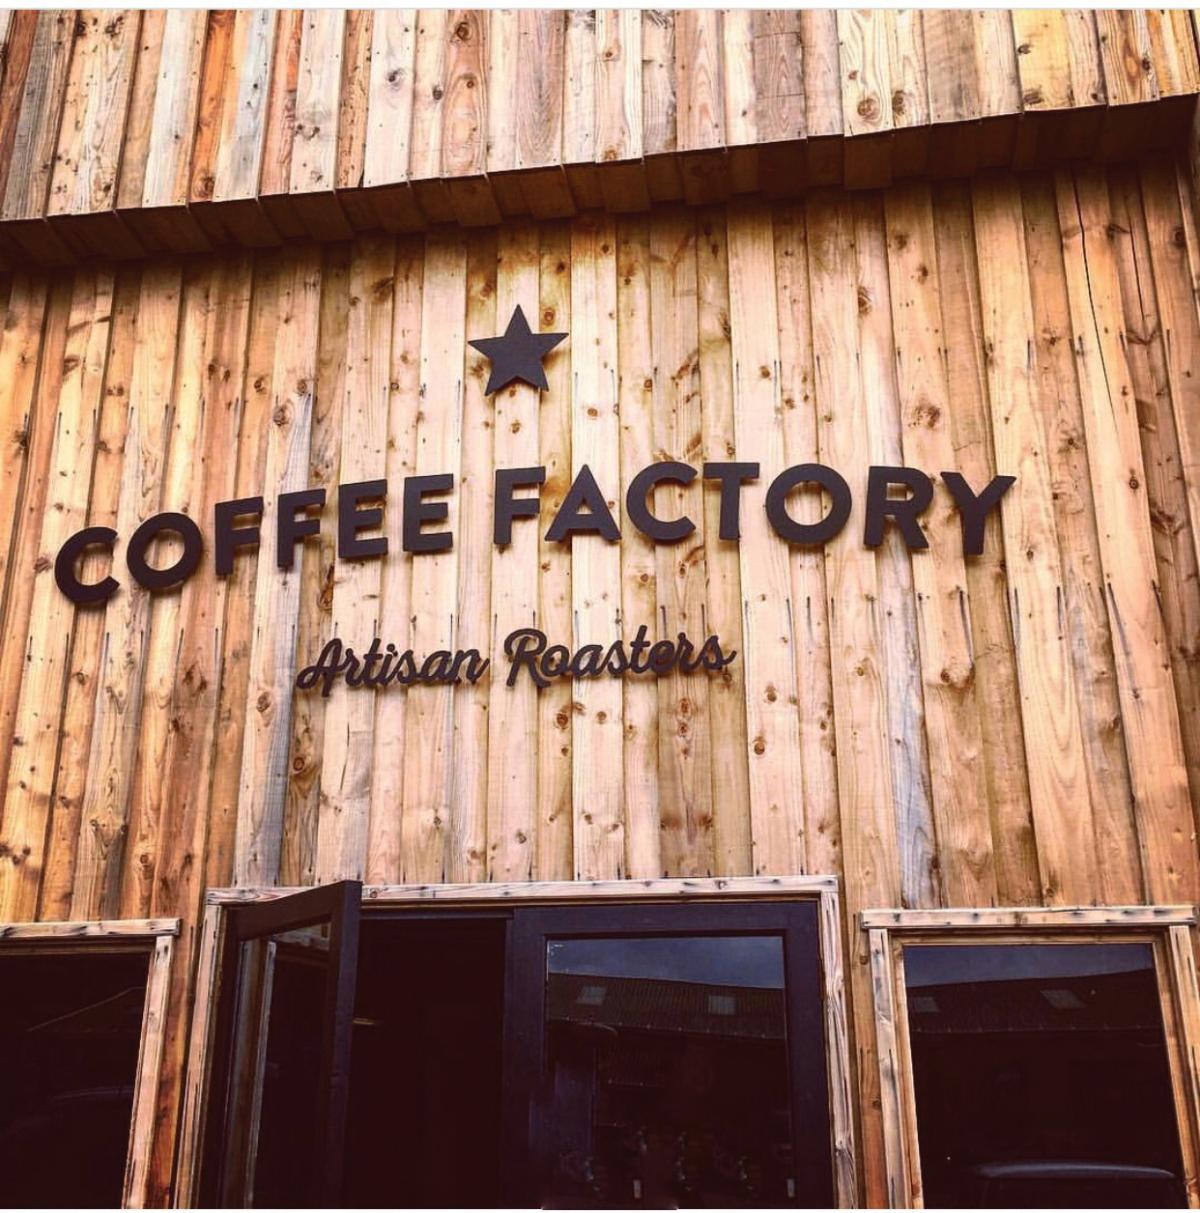 Images from The Coffee Factory